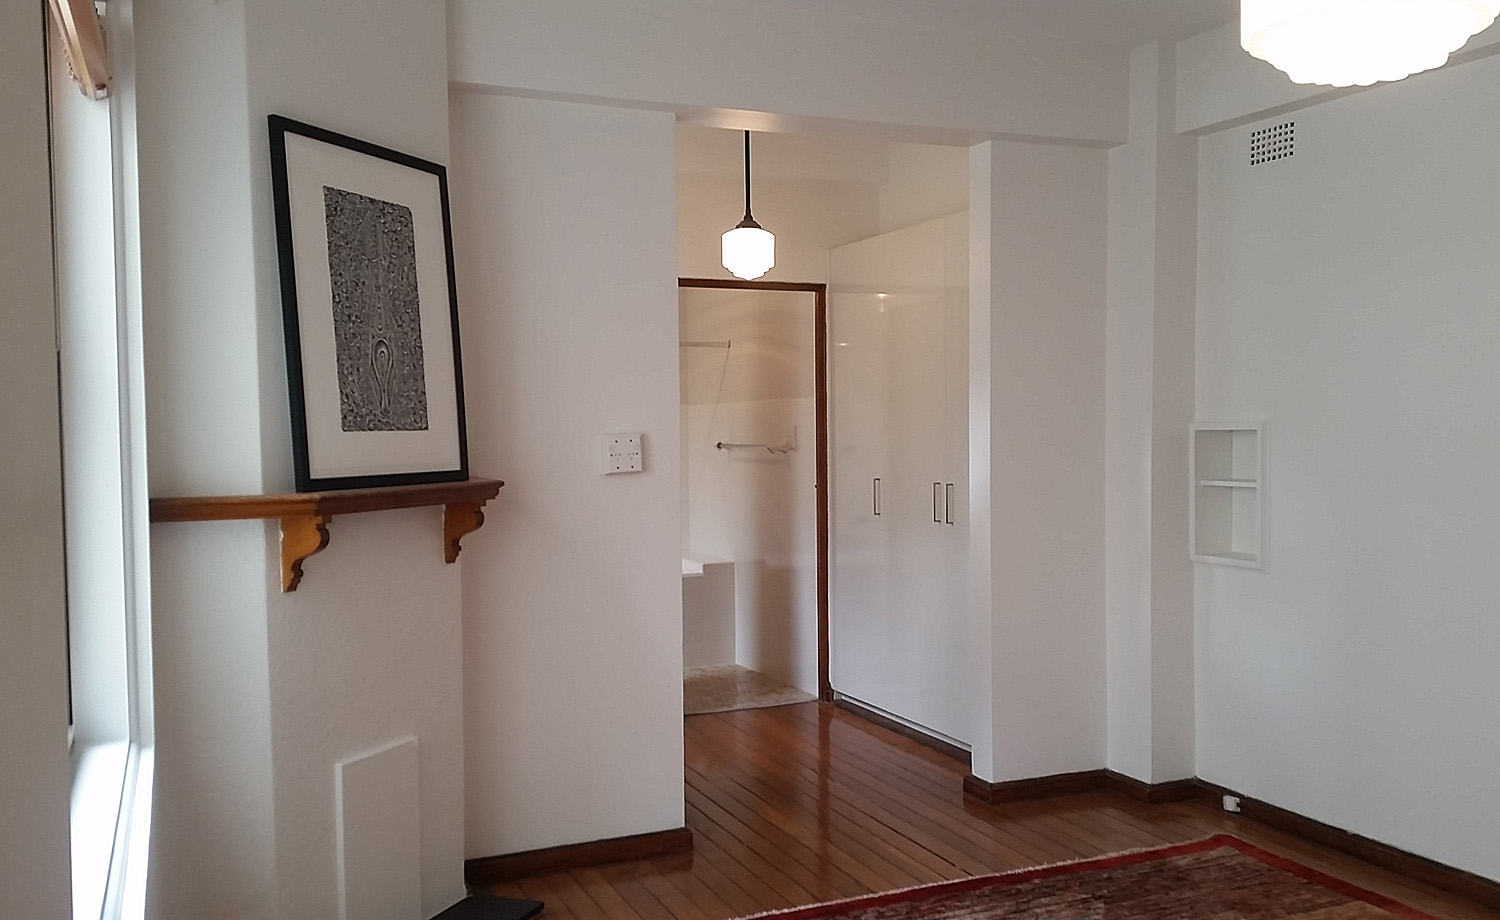 City-Kitchens_Potts-Point-2_Apartment-Renovation_Study-to-Bathroom_01.jpg